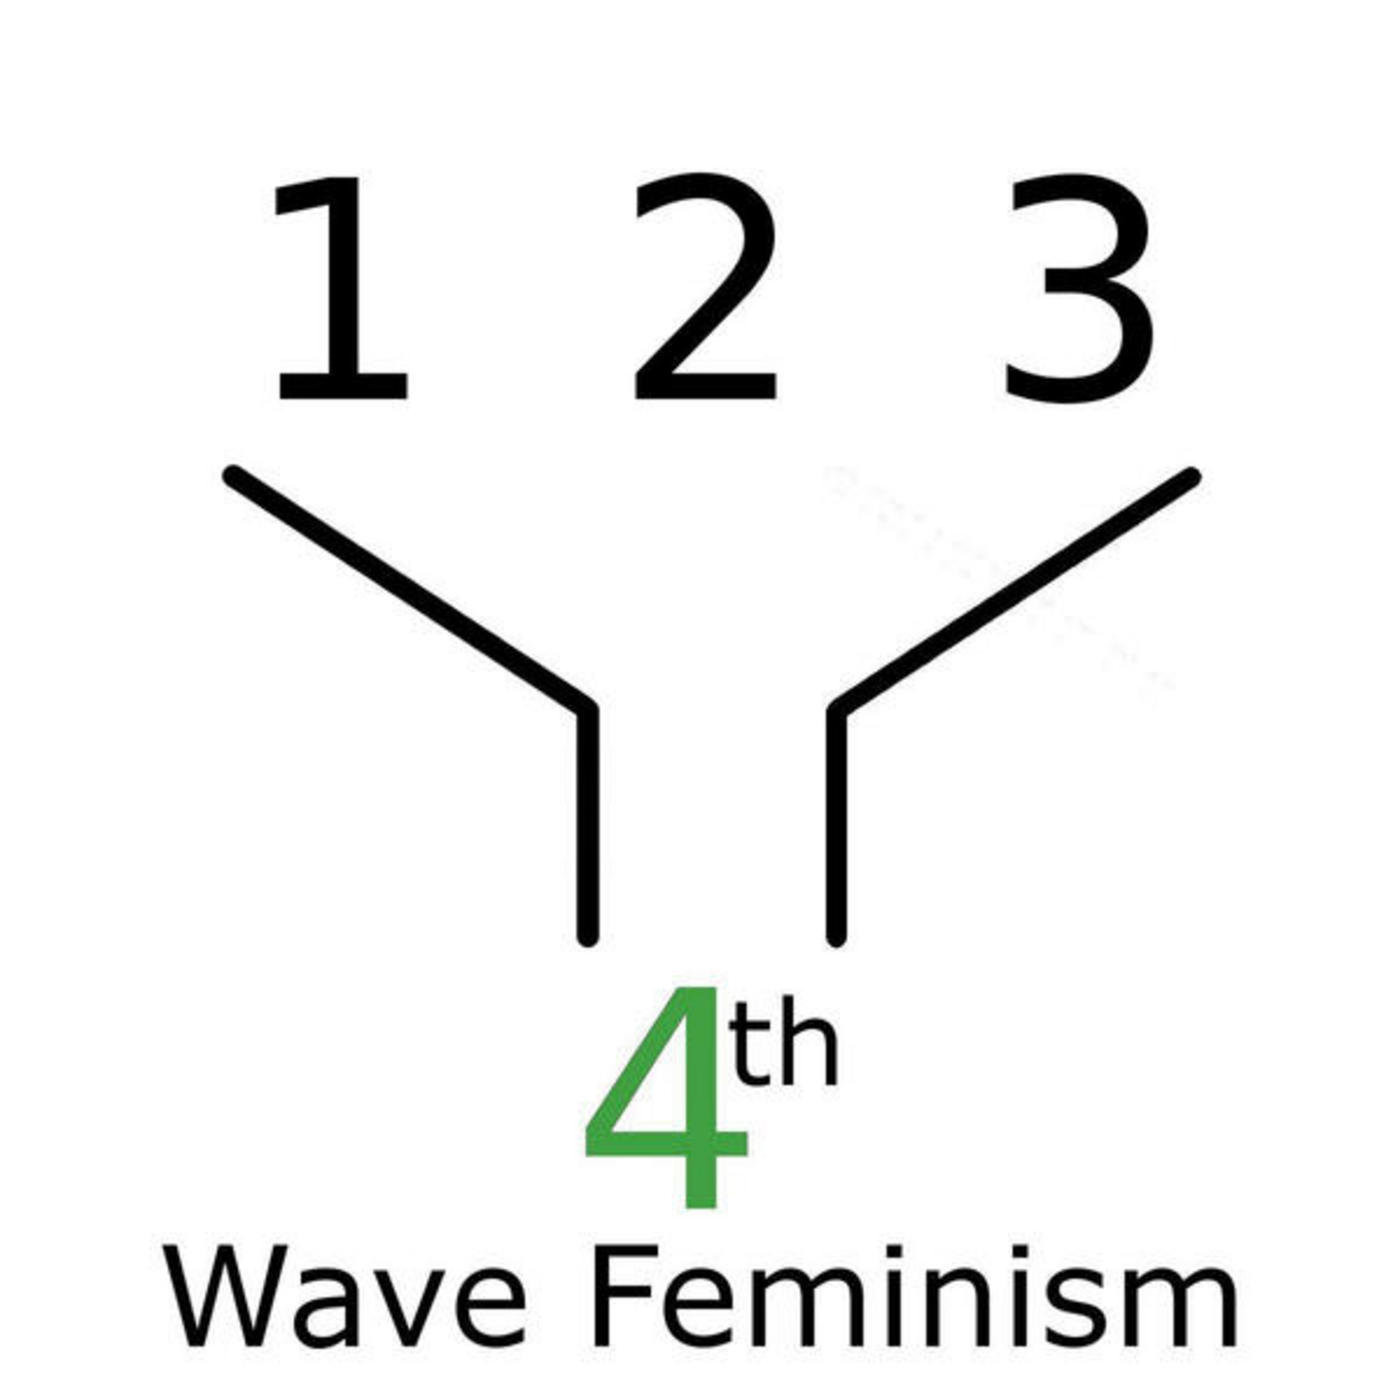 fourth wave feminism Of course, there are good reasons why mailer in particular should suffer posthumous obscurity with such alacrity: his brand of male essentialist braggadocio is arguably extraneous in the age of trump, weinstein, and fourth-wave feminism.